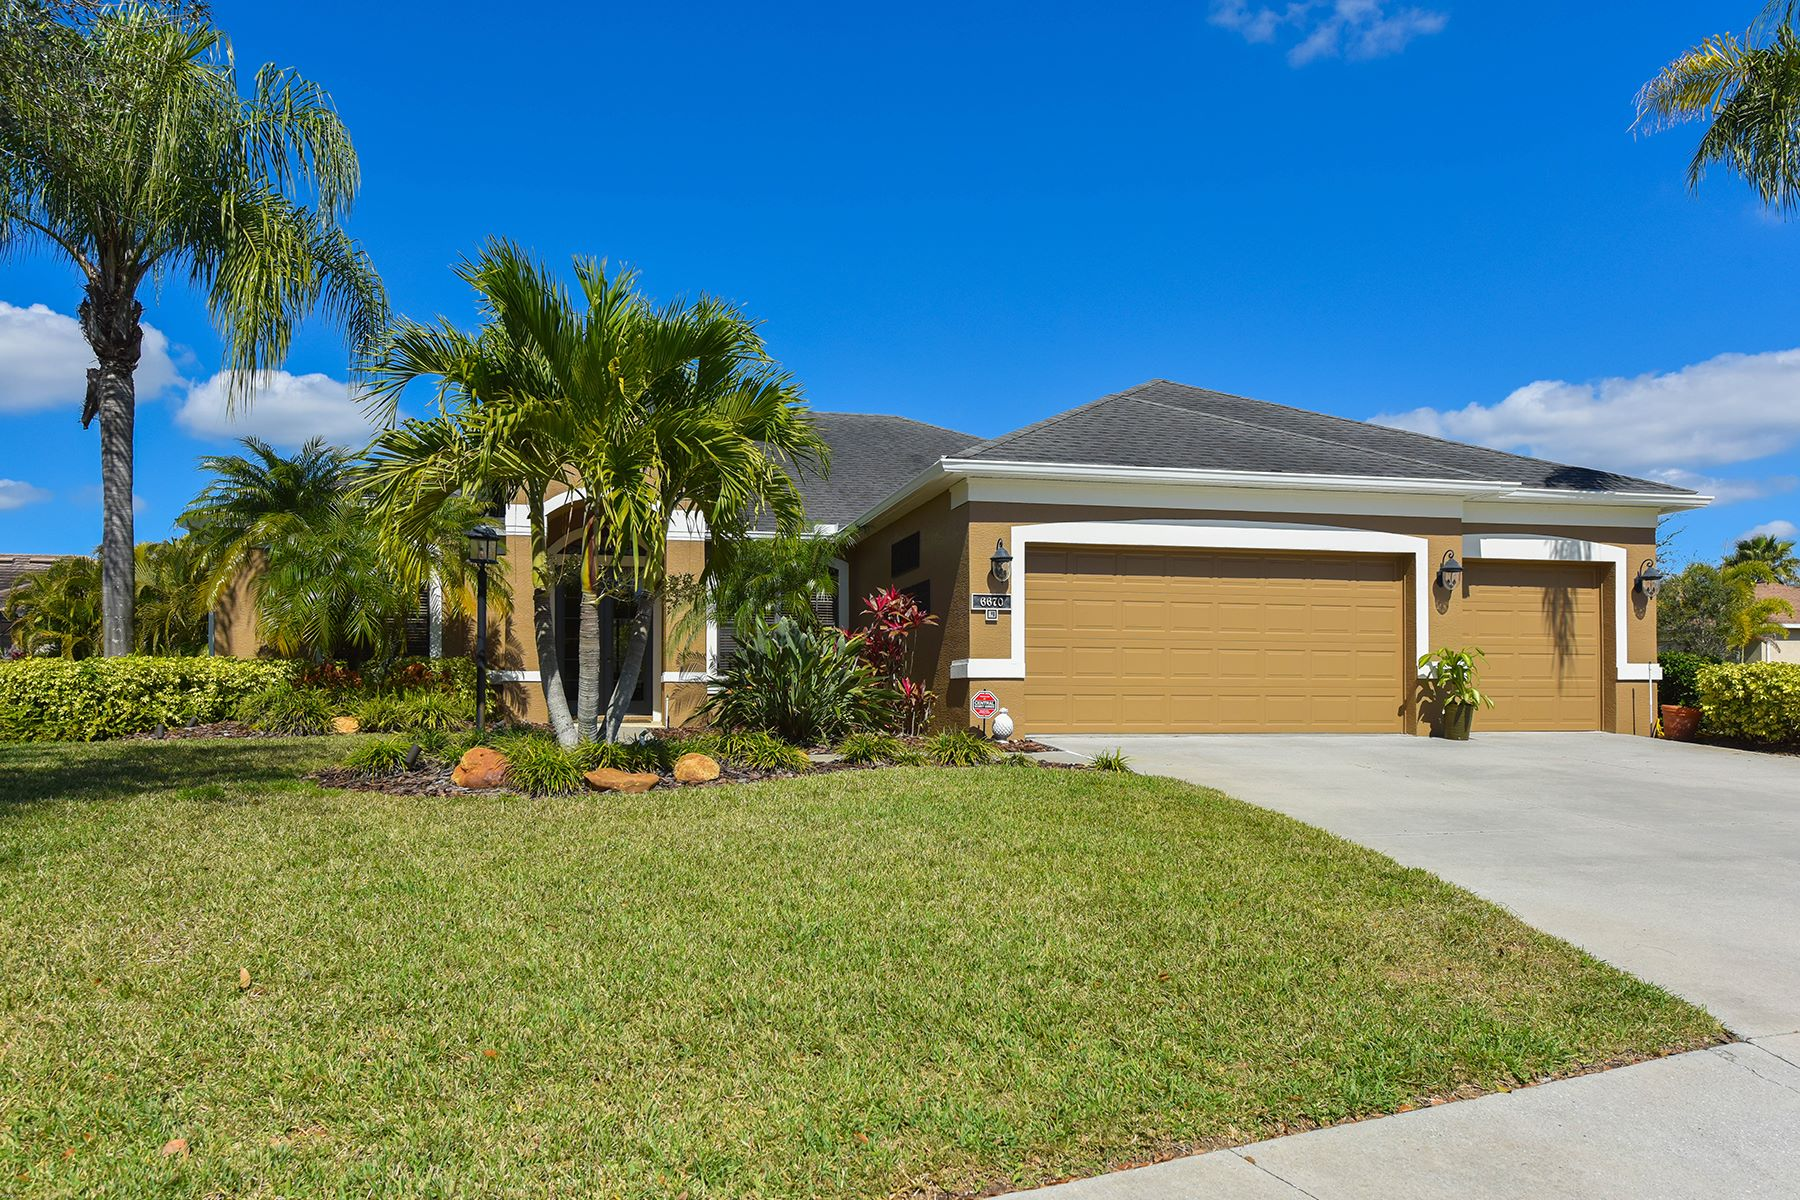 Single Family Home for Sale at GREENBROOK VILLAGE 6670 Coopers Hawk Ct, Lakewood Ranch, Florida 34202 United States